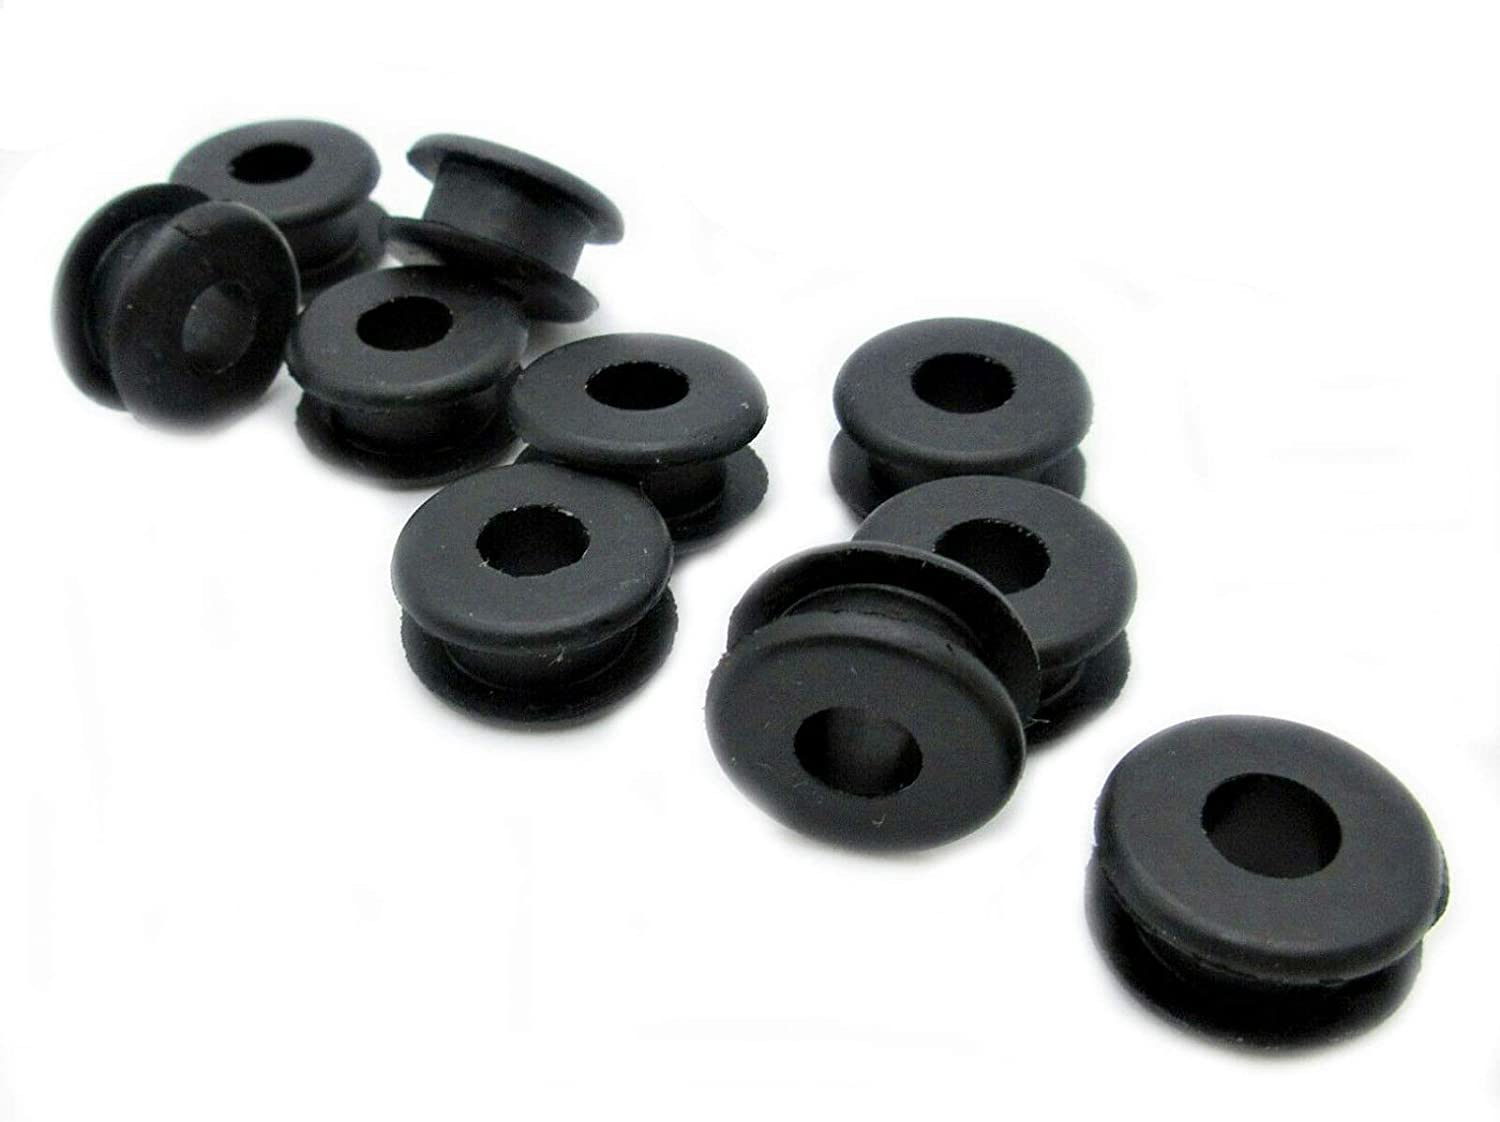 "3//16/"" ID x 1//2 OD SBR Rubber Grommet Black Rubber Grommet Round Rubber Grommet Rubber Grommets for 3//8 Panel Hole Fits 1//8/"" Panel 50"